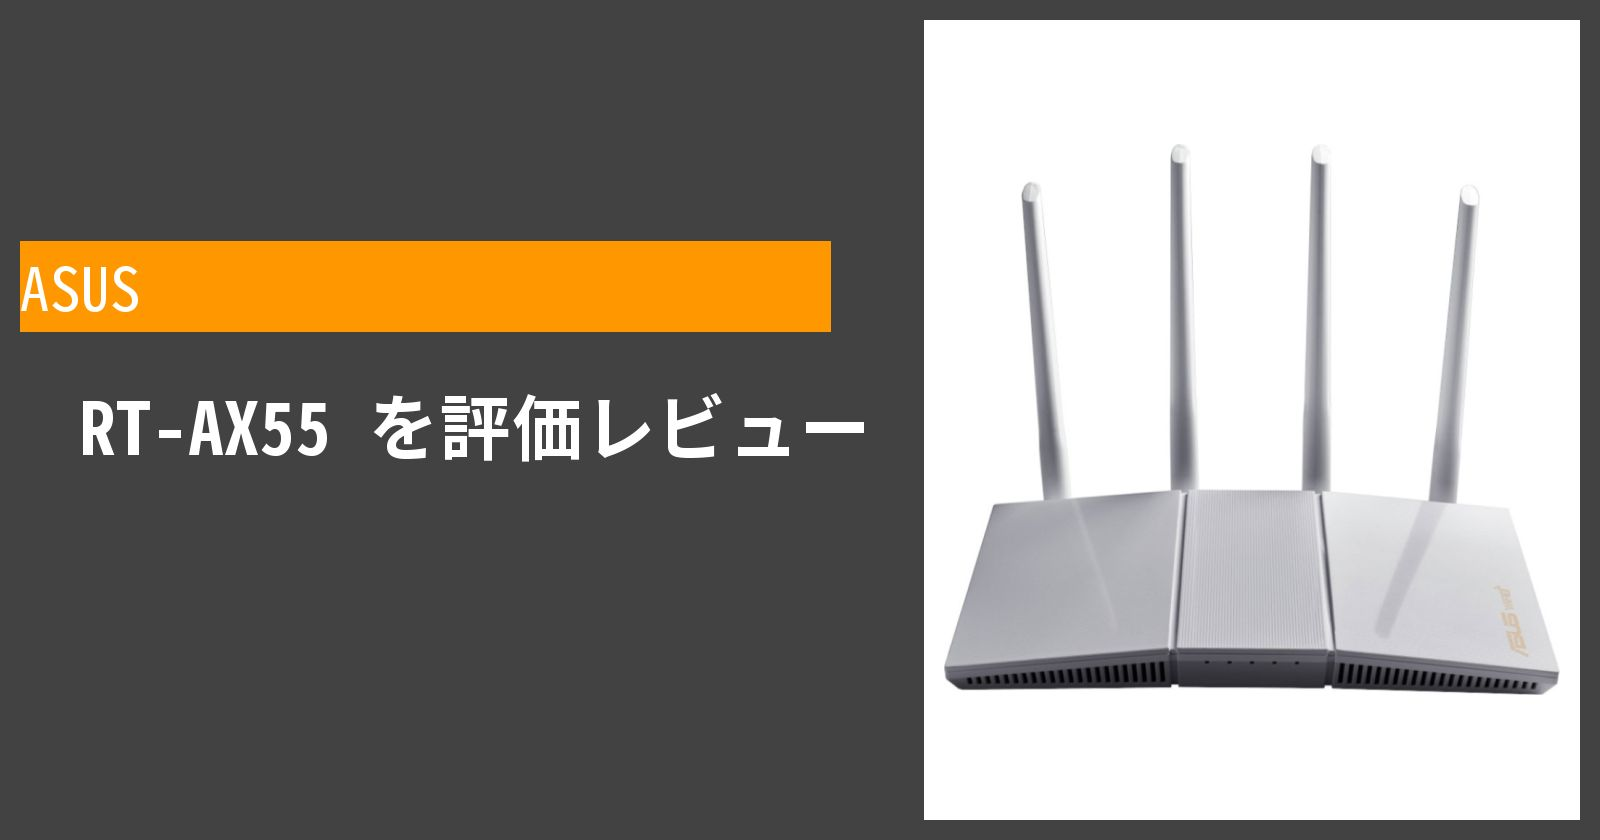 RT-AX55を徹底評価